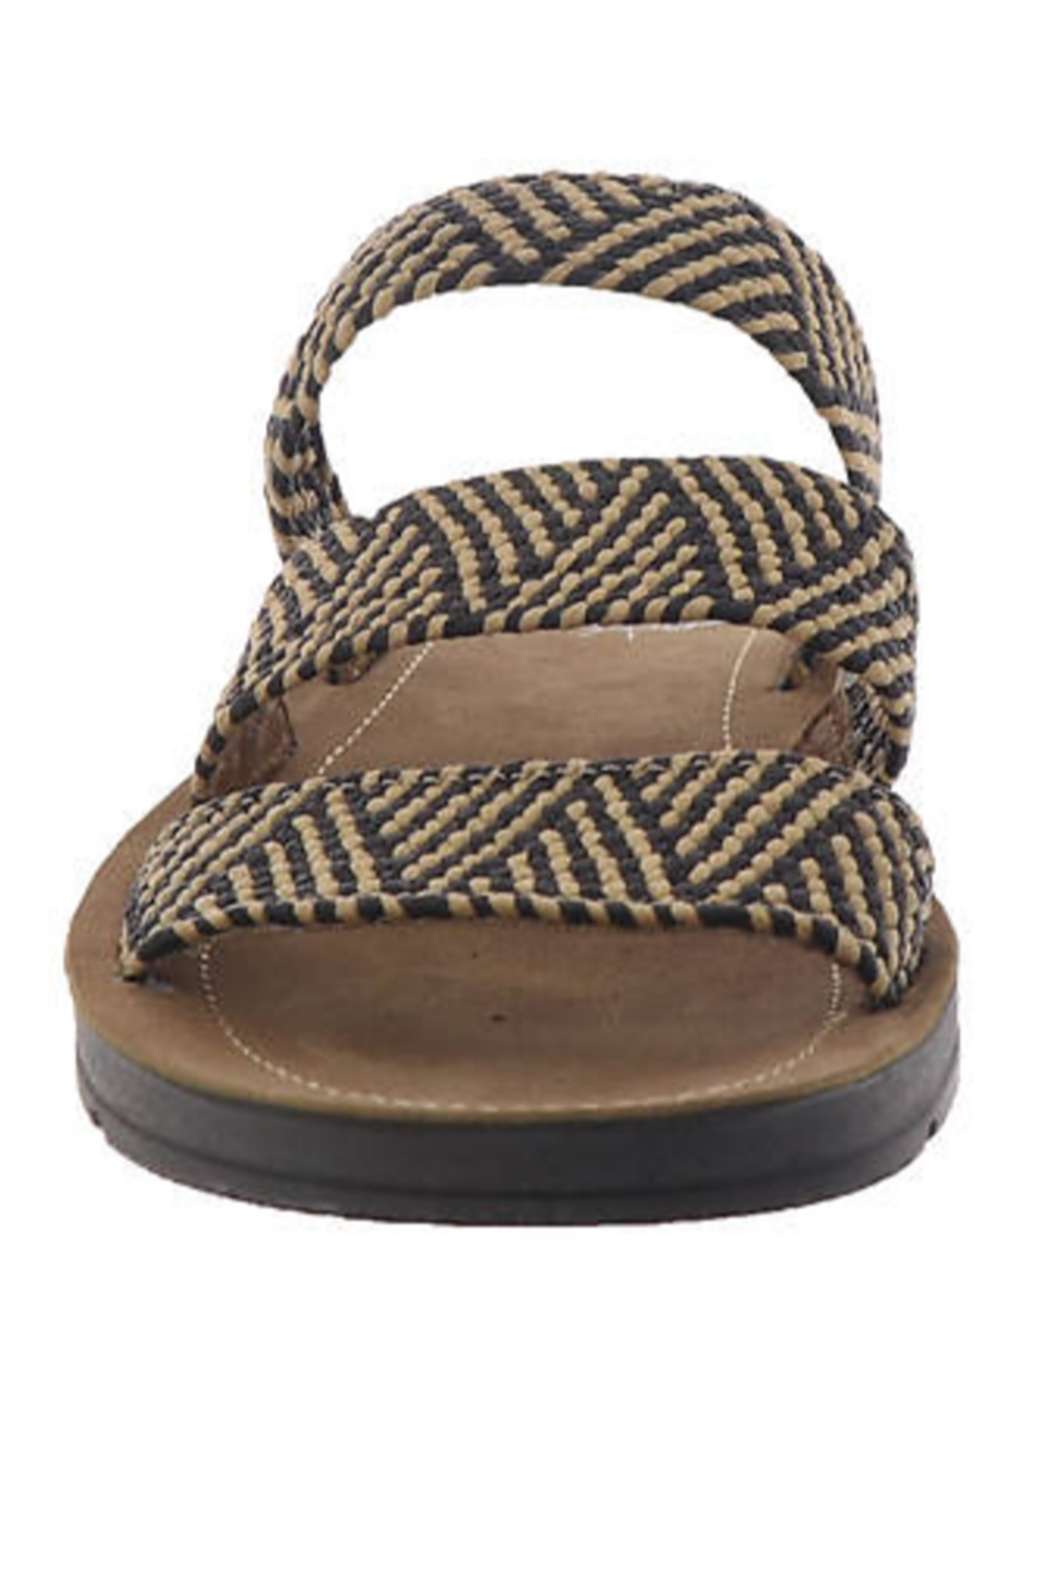 Corky's Shoes DAFNE WOVEN SANDAL - Side Cropped Image